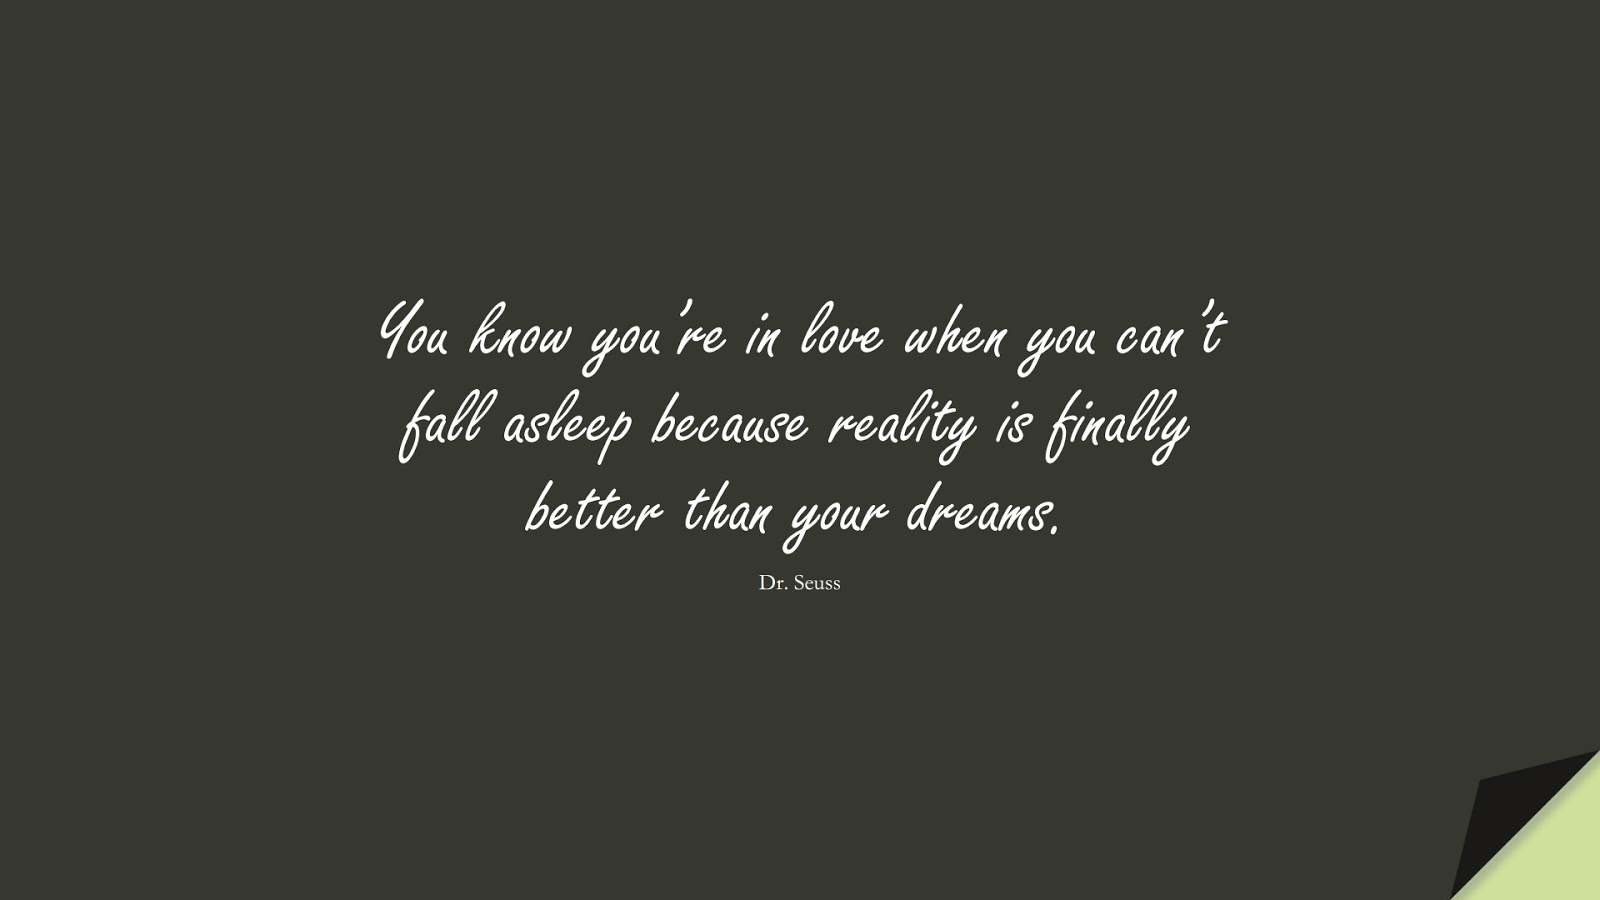 You know you're in love when you can't fall asleep because reality is finally better than your dreams. (Dr. Seuss);  #LoveQuotes